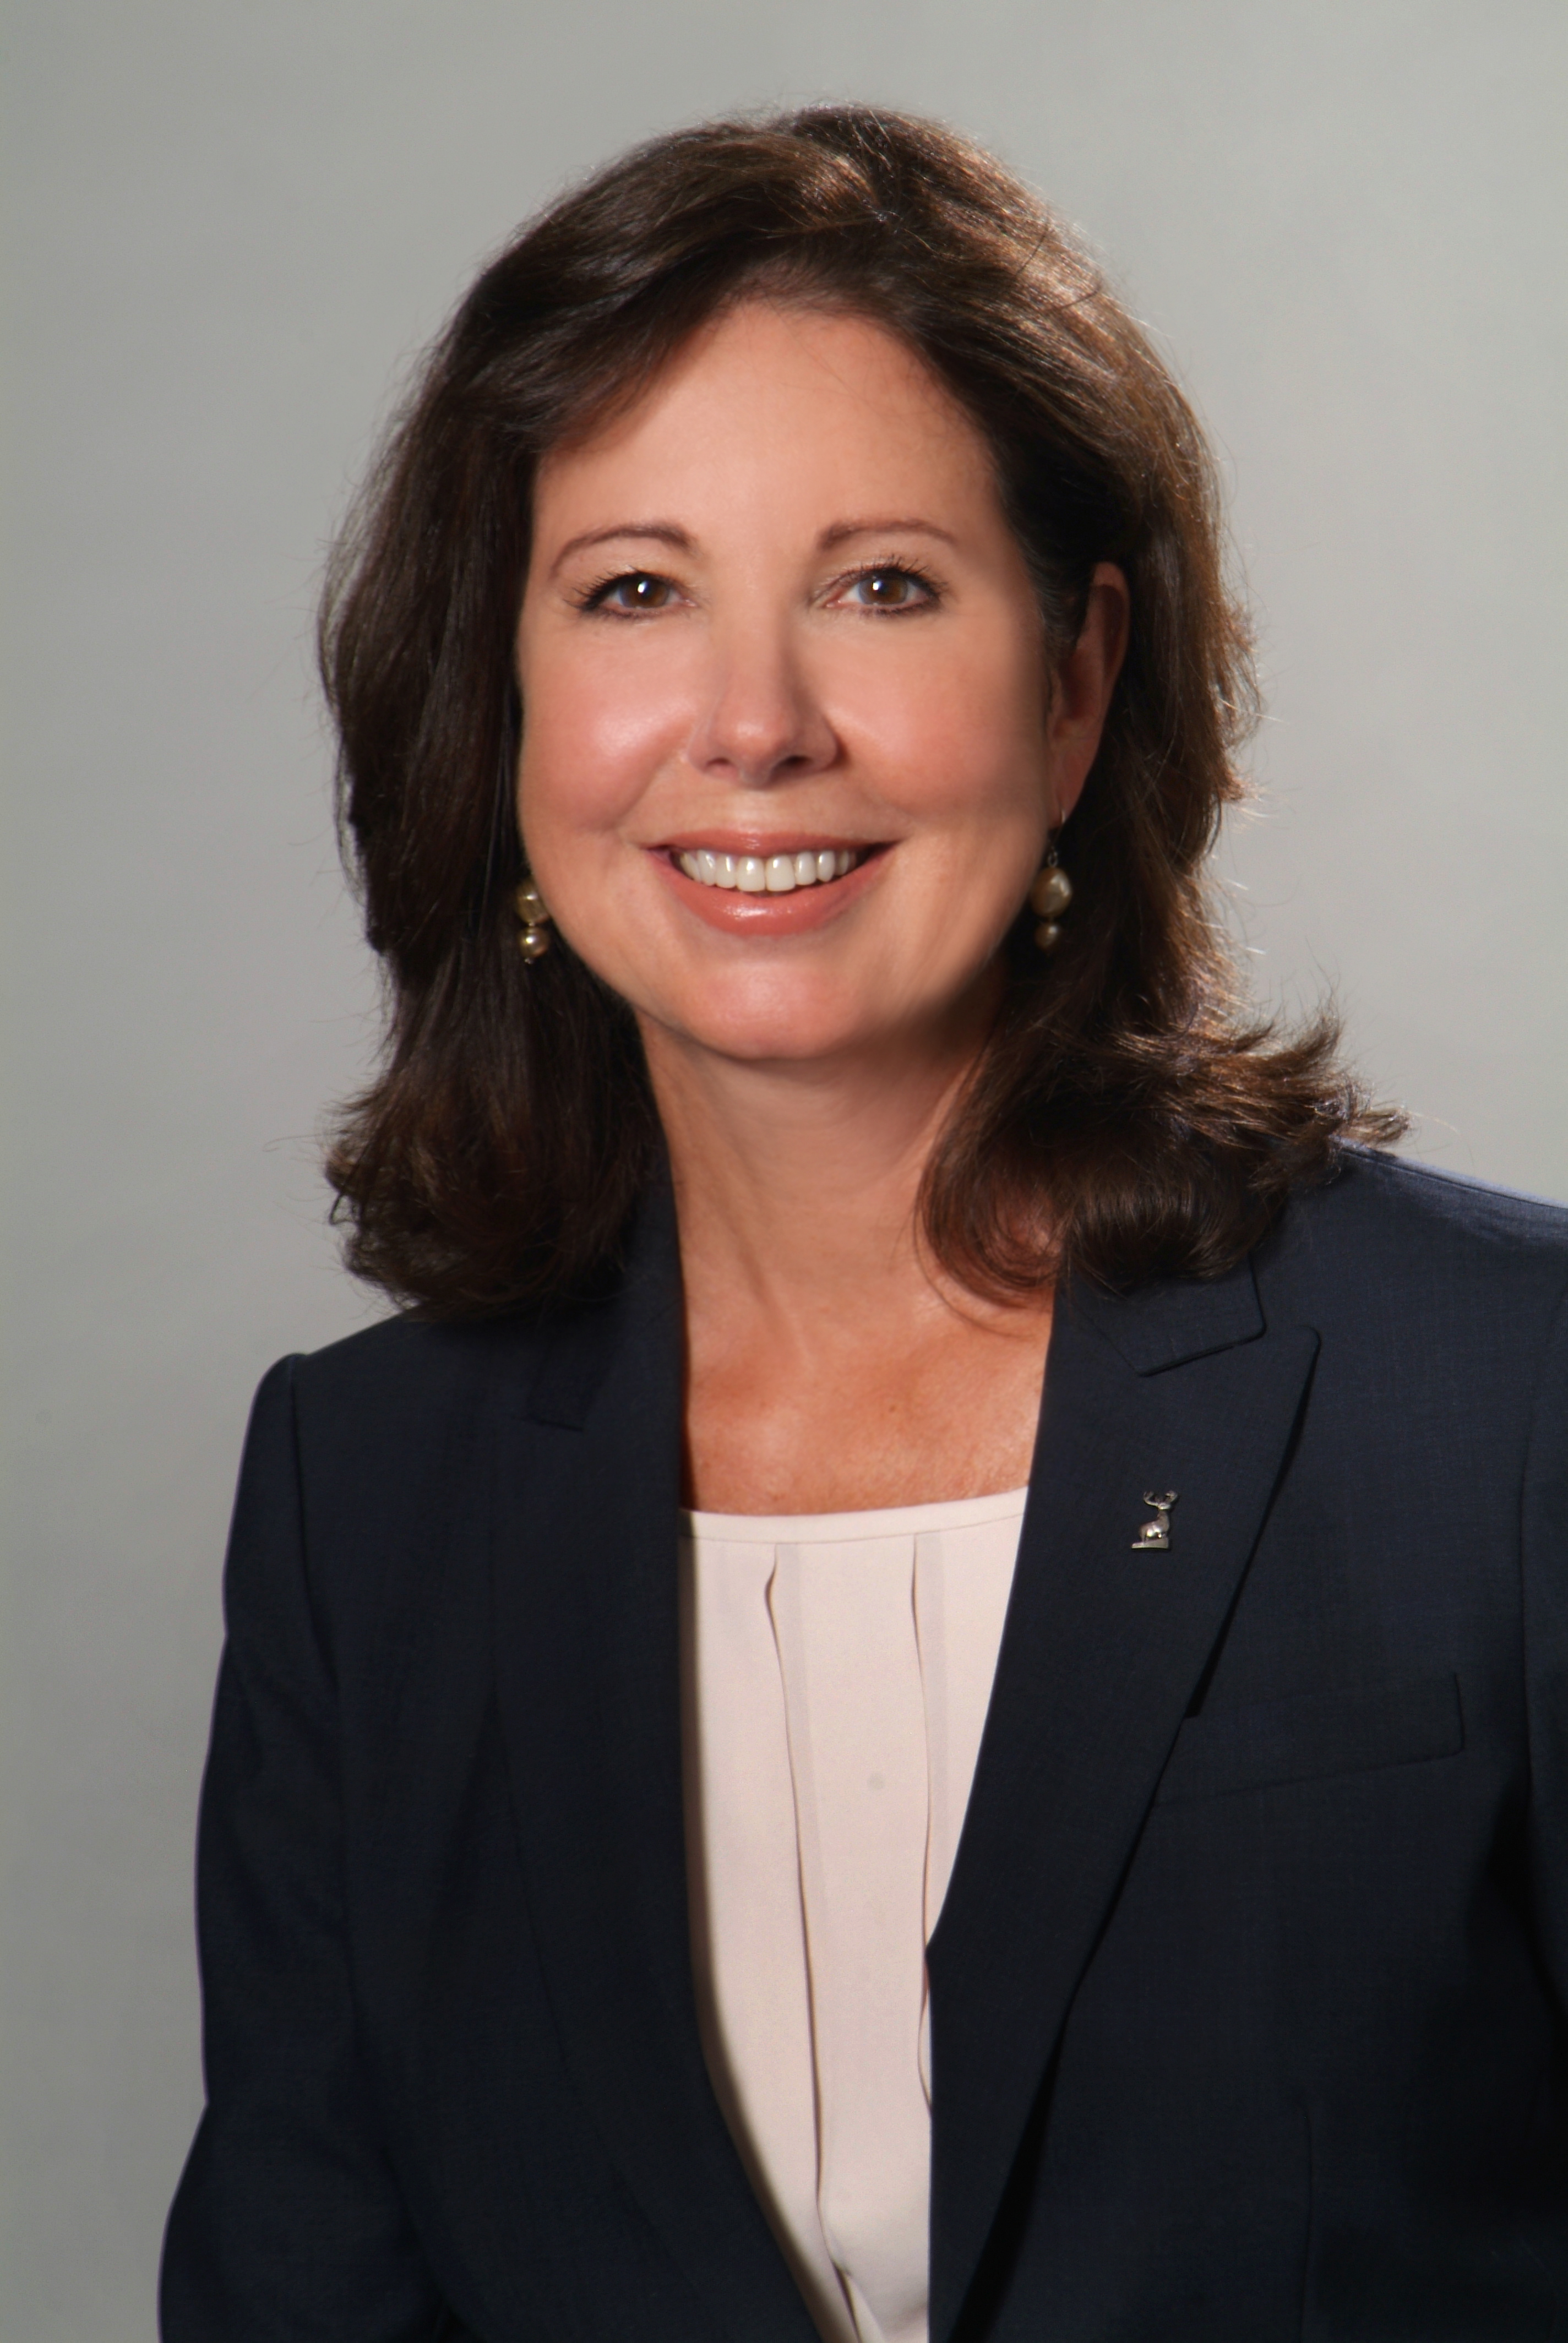 Patricia A. McEvoy, Chief Ethics and Compliance Officer at The Hartford. (Photo: Business Wire)